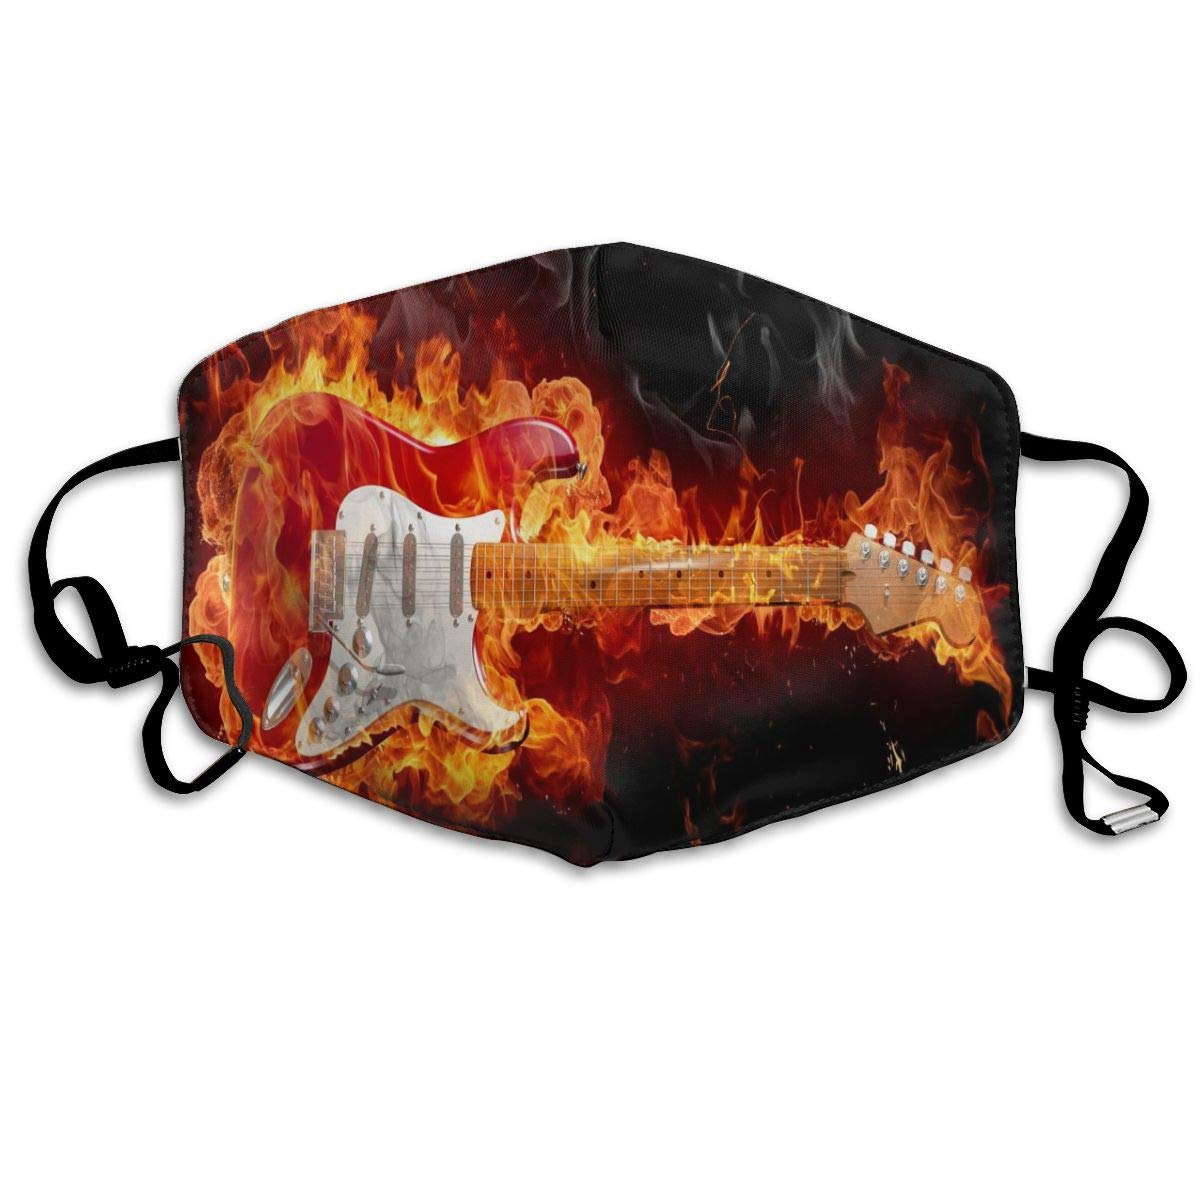 Face Mask Guitar Fire Wallpaper Fabulous Cycling Half Face Earloop Face Mask For Girls